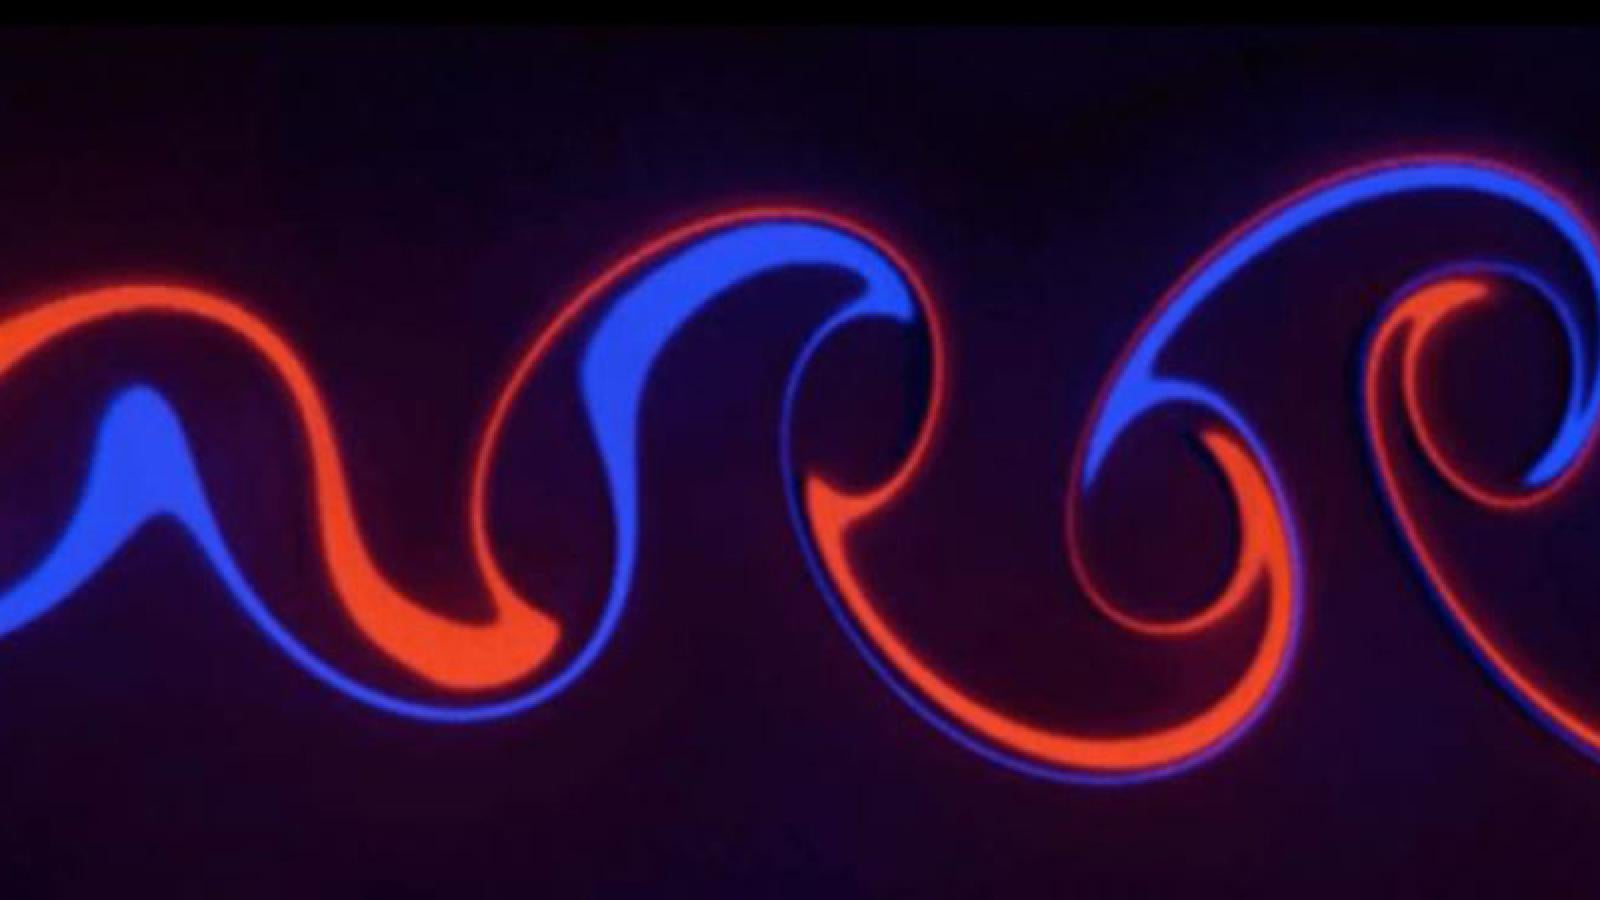 Fluid design in red and blue